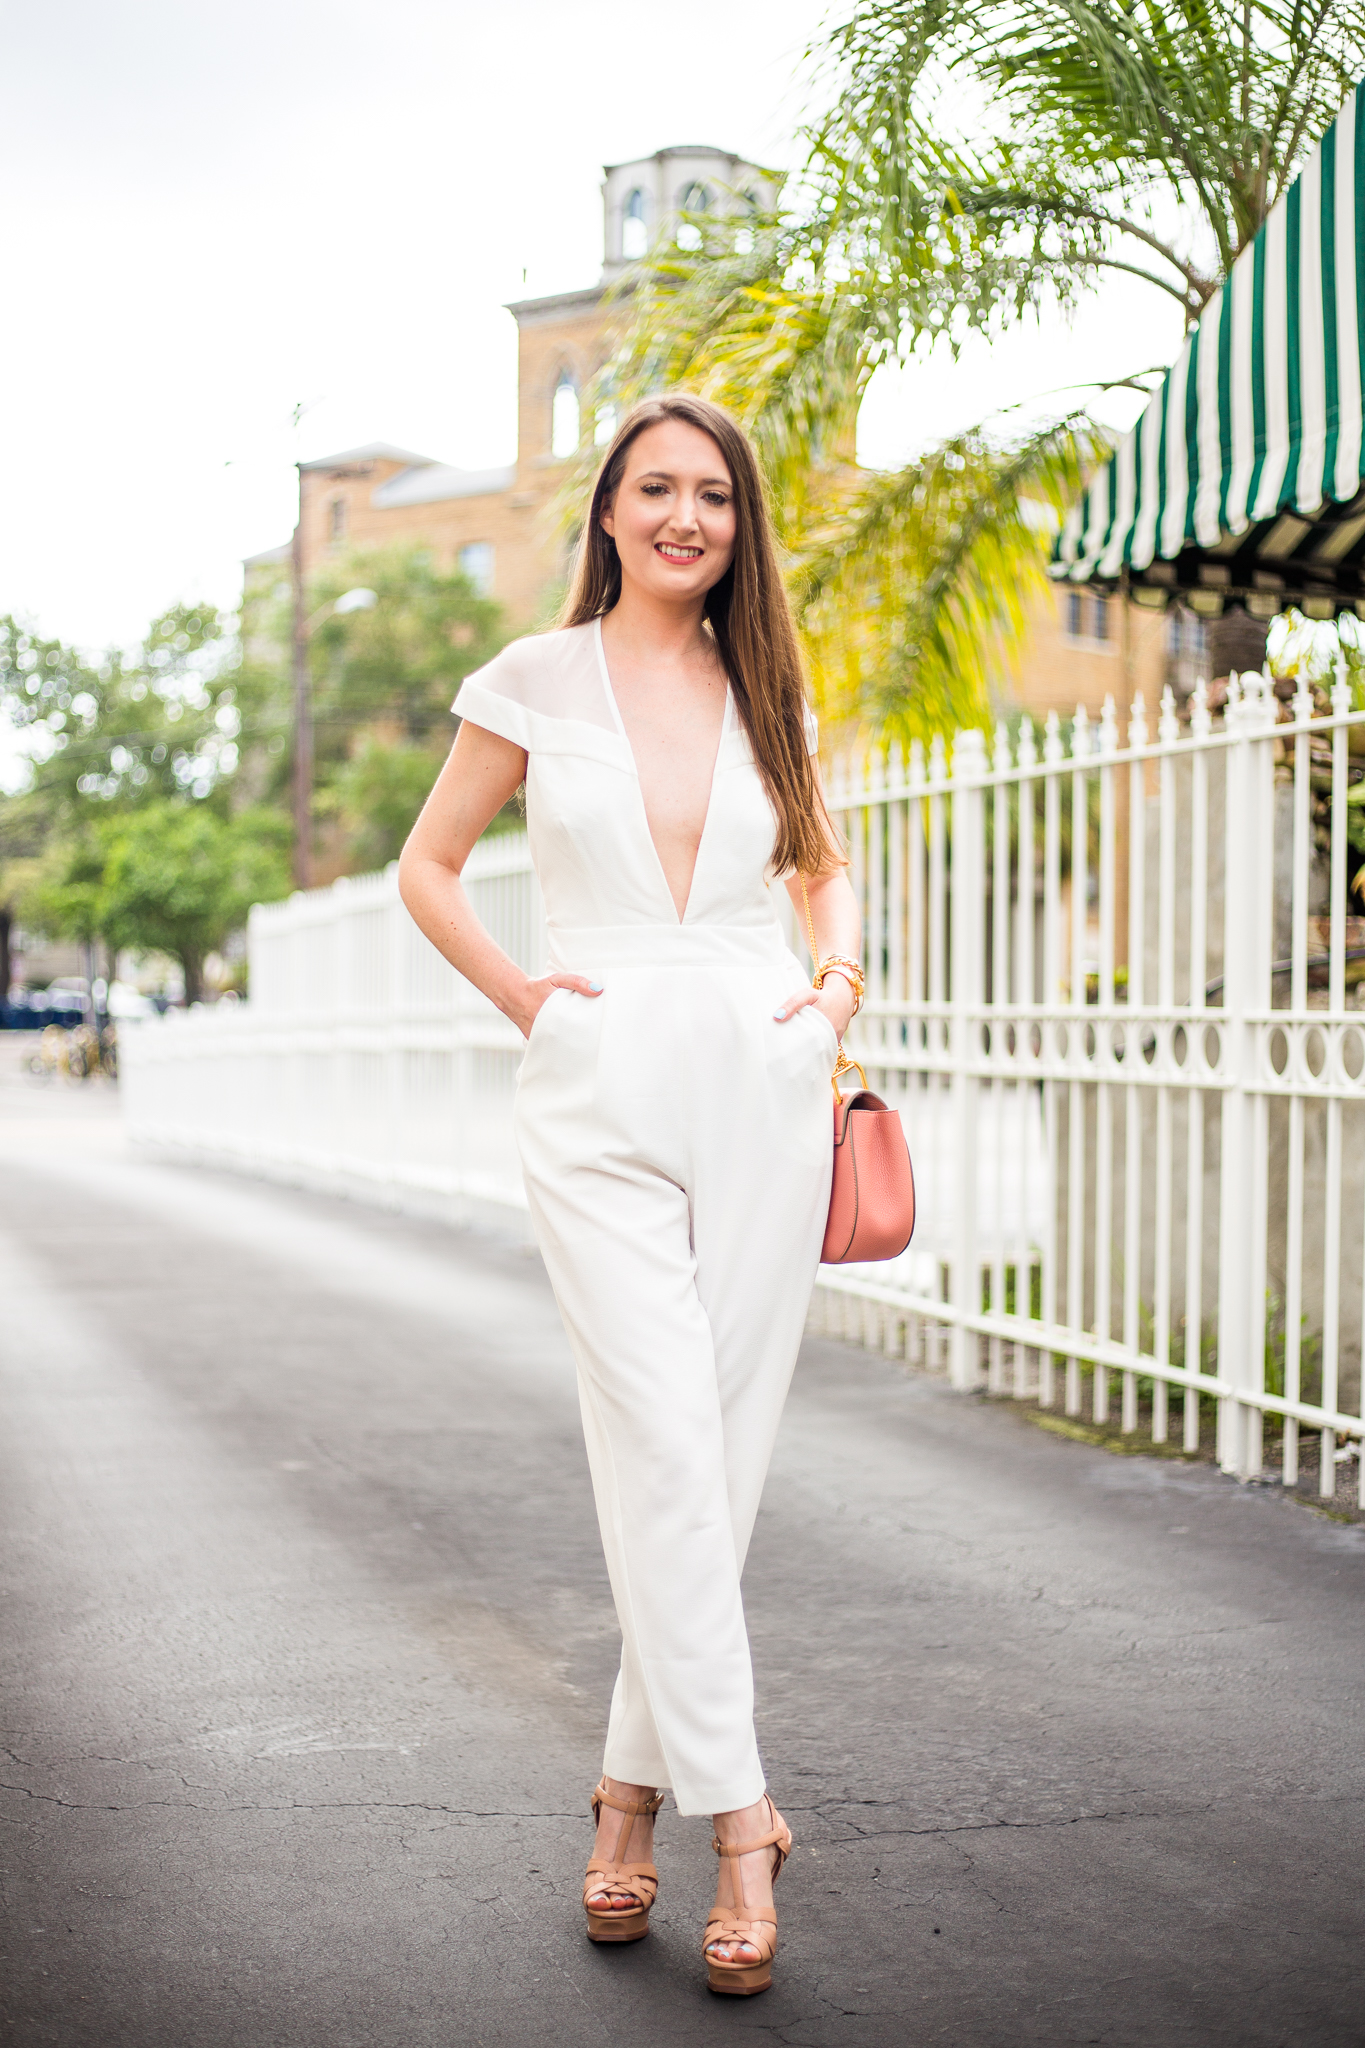 Is wearing white after Labor Day a fashion faux pas?